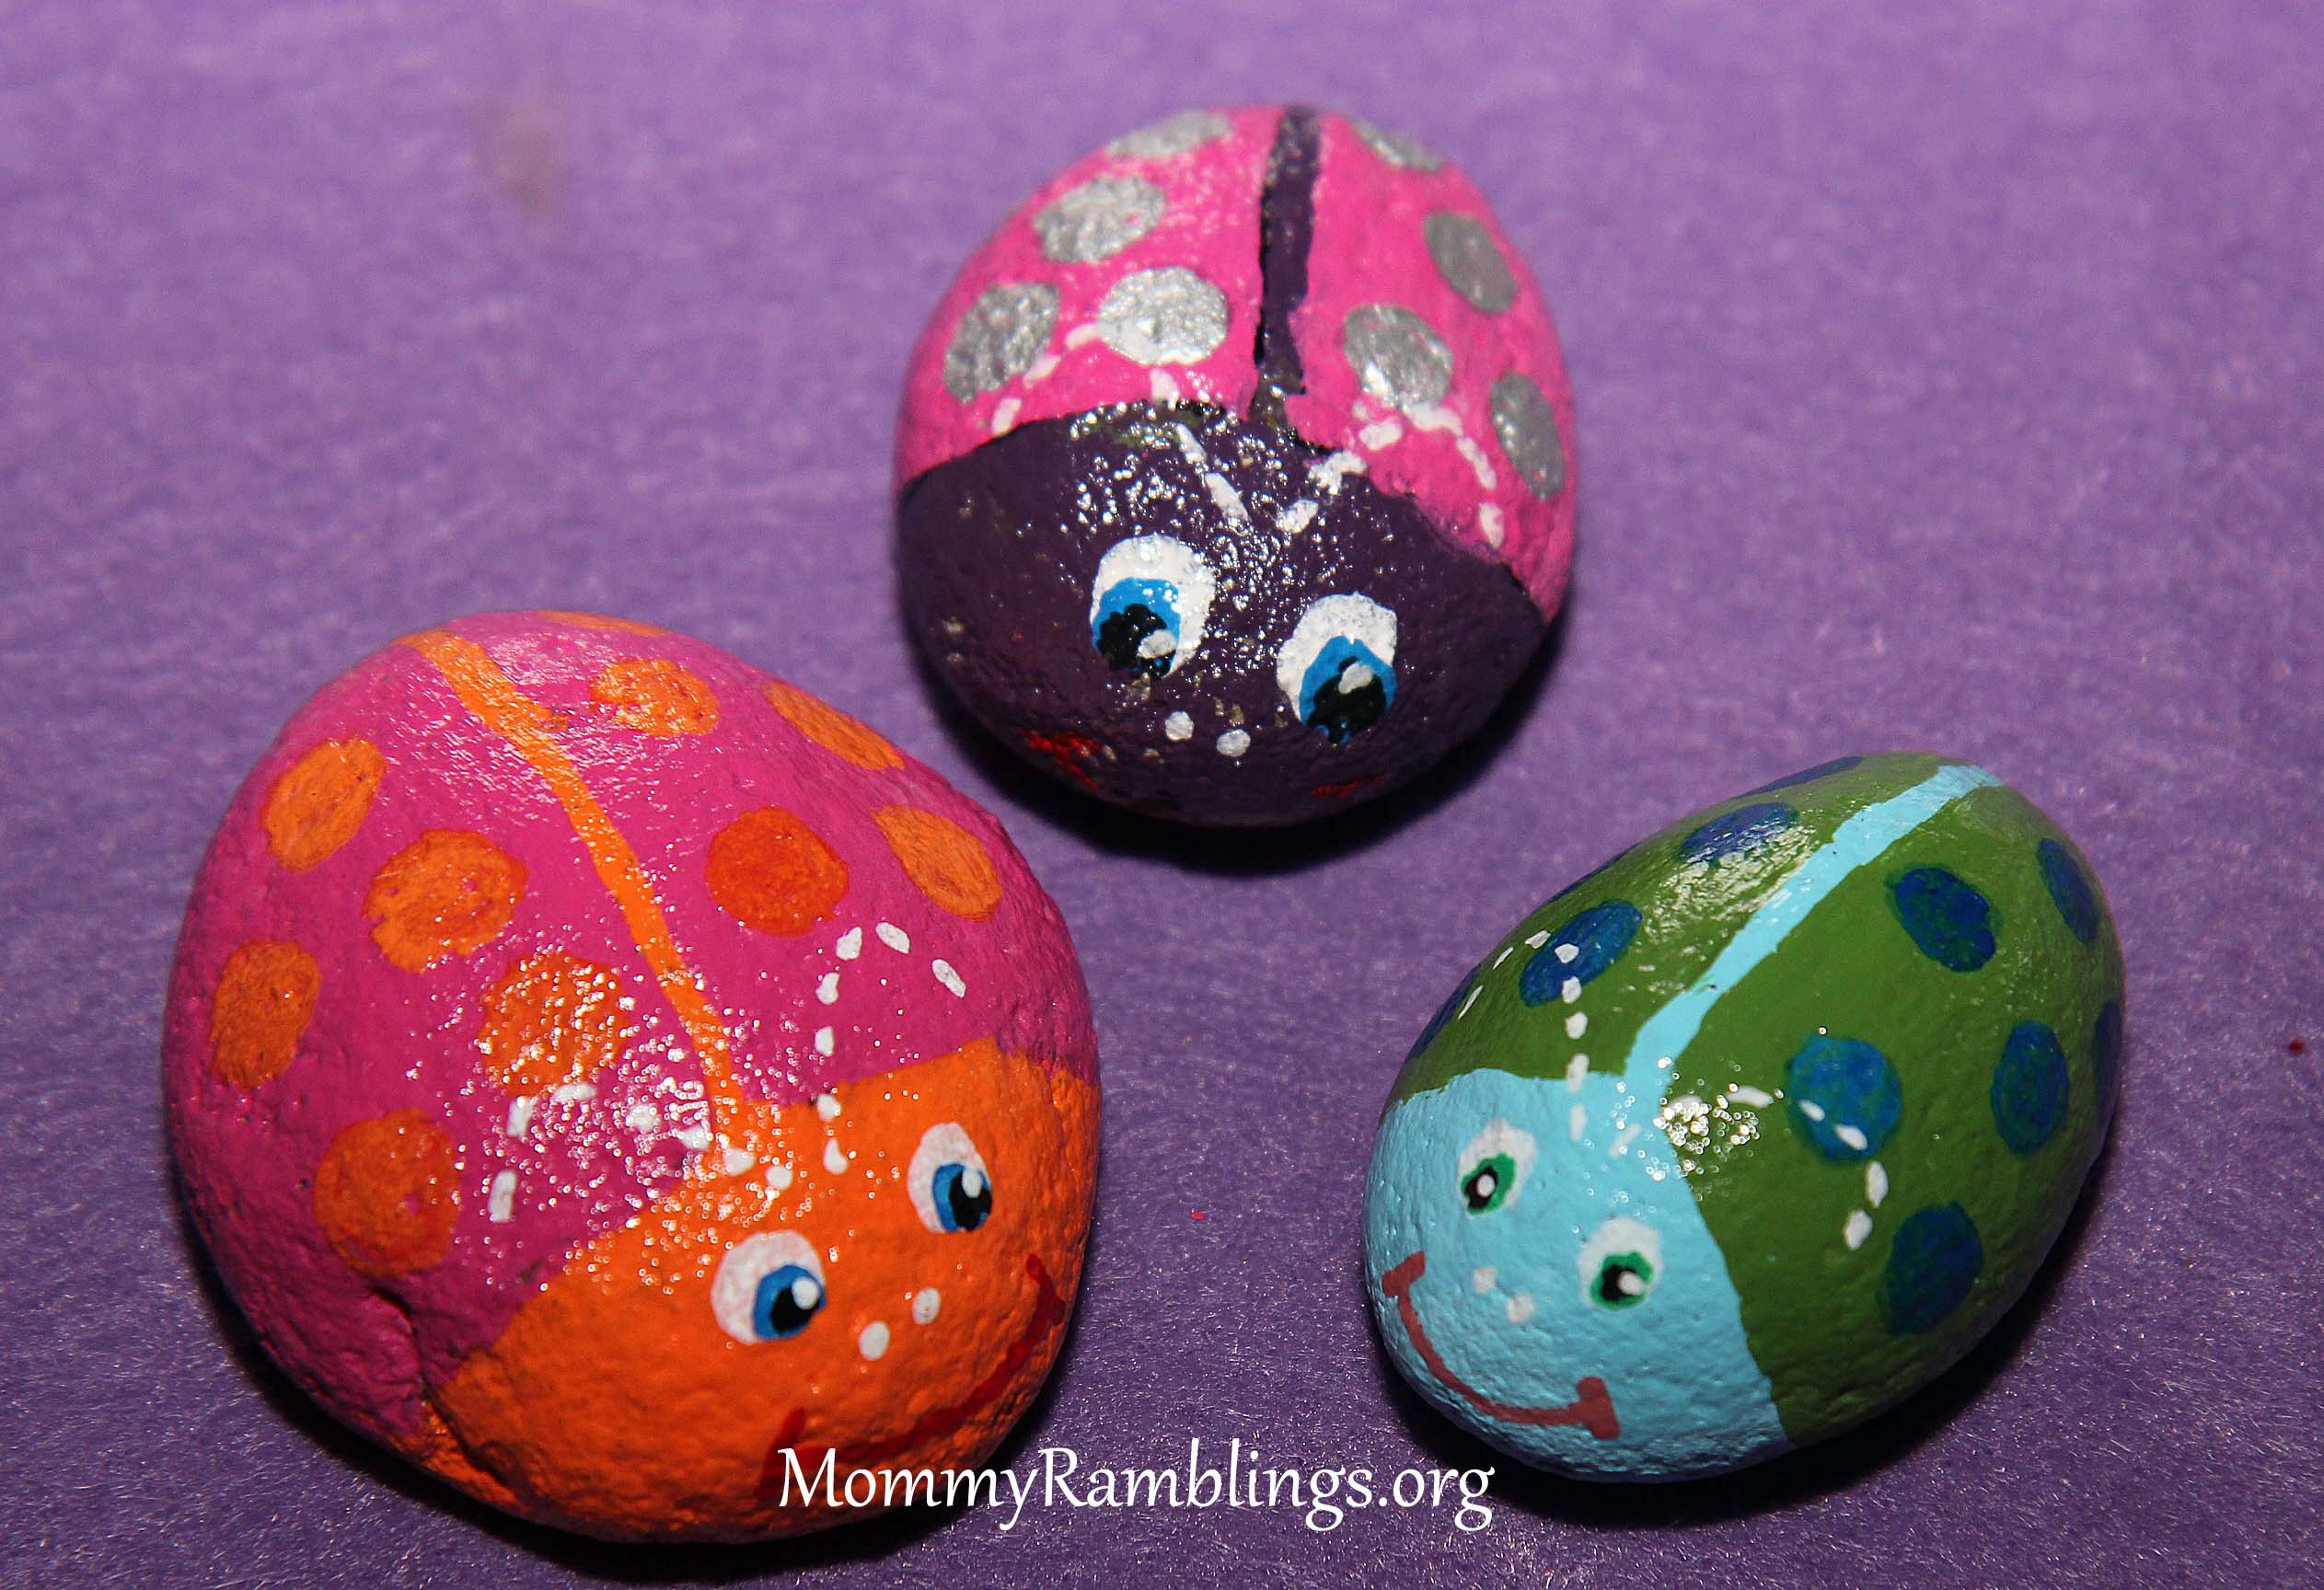 River rock painting fun mommy ramblings for River rock craft ideas